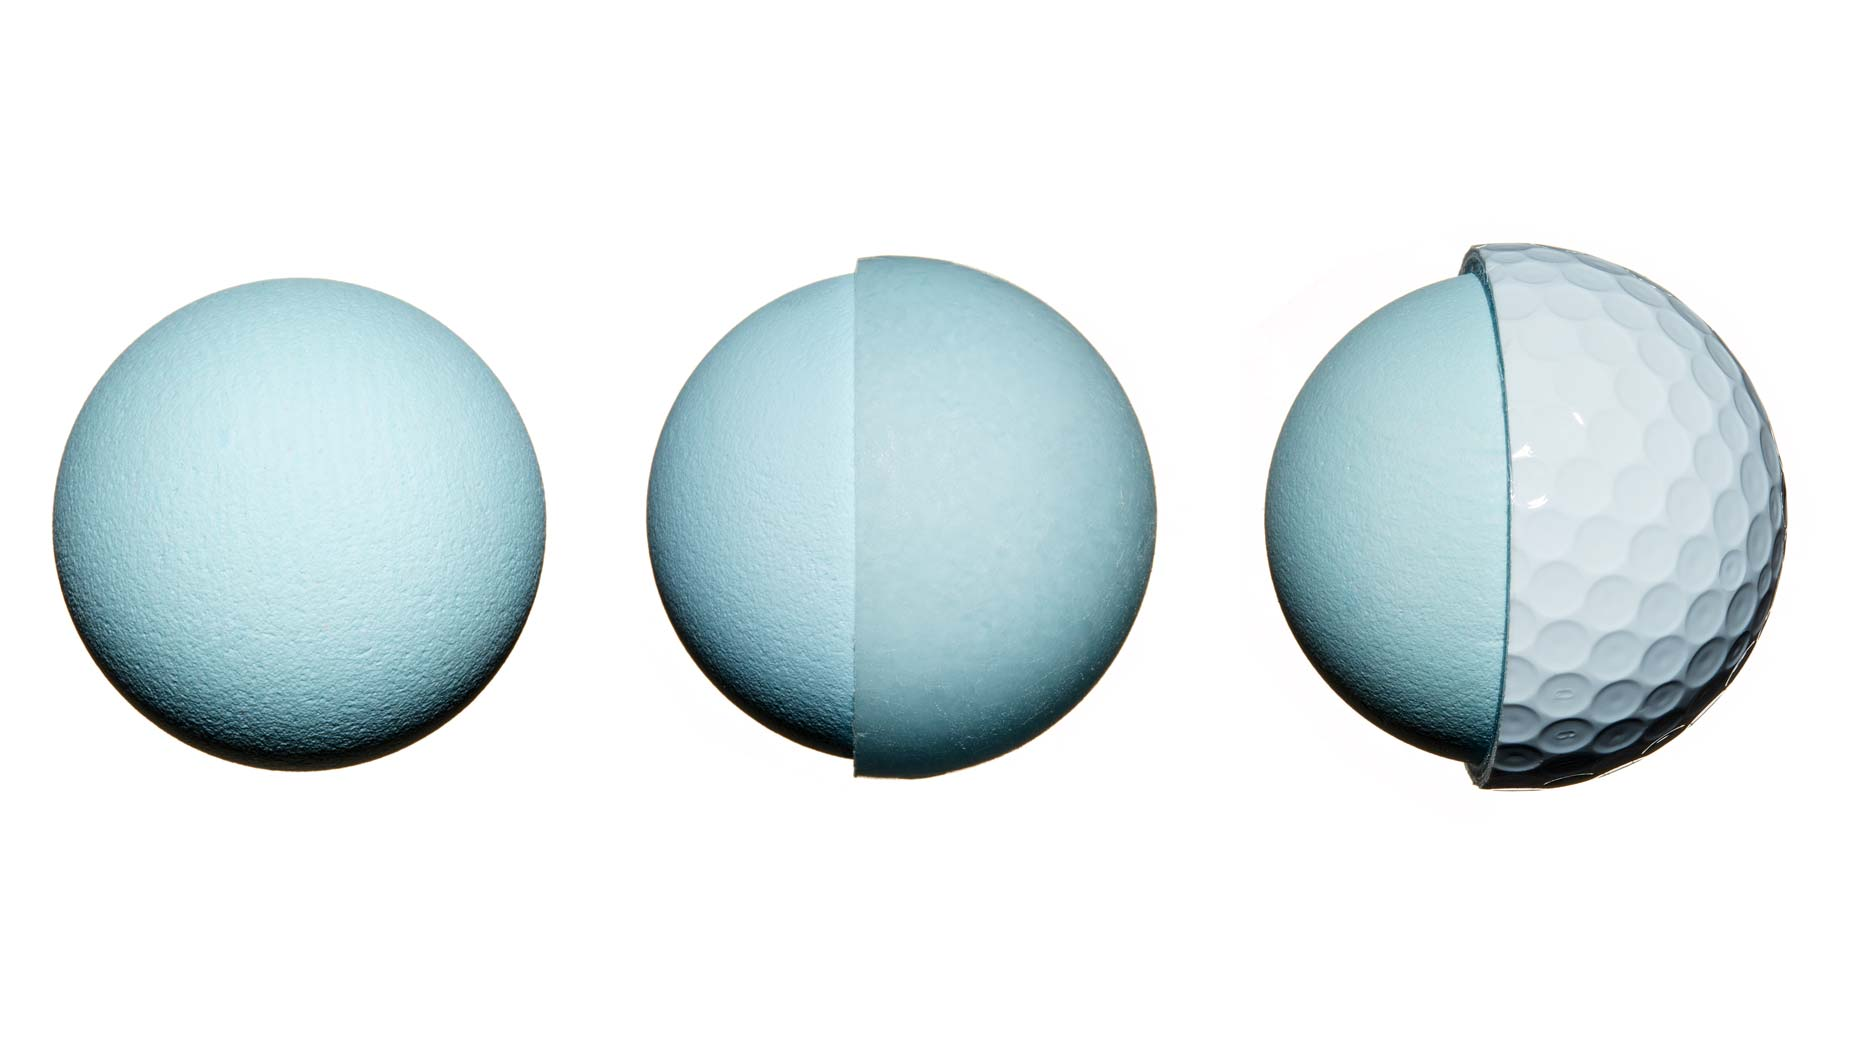 Inside layers of three golf balls